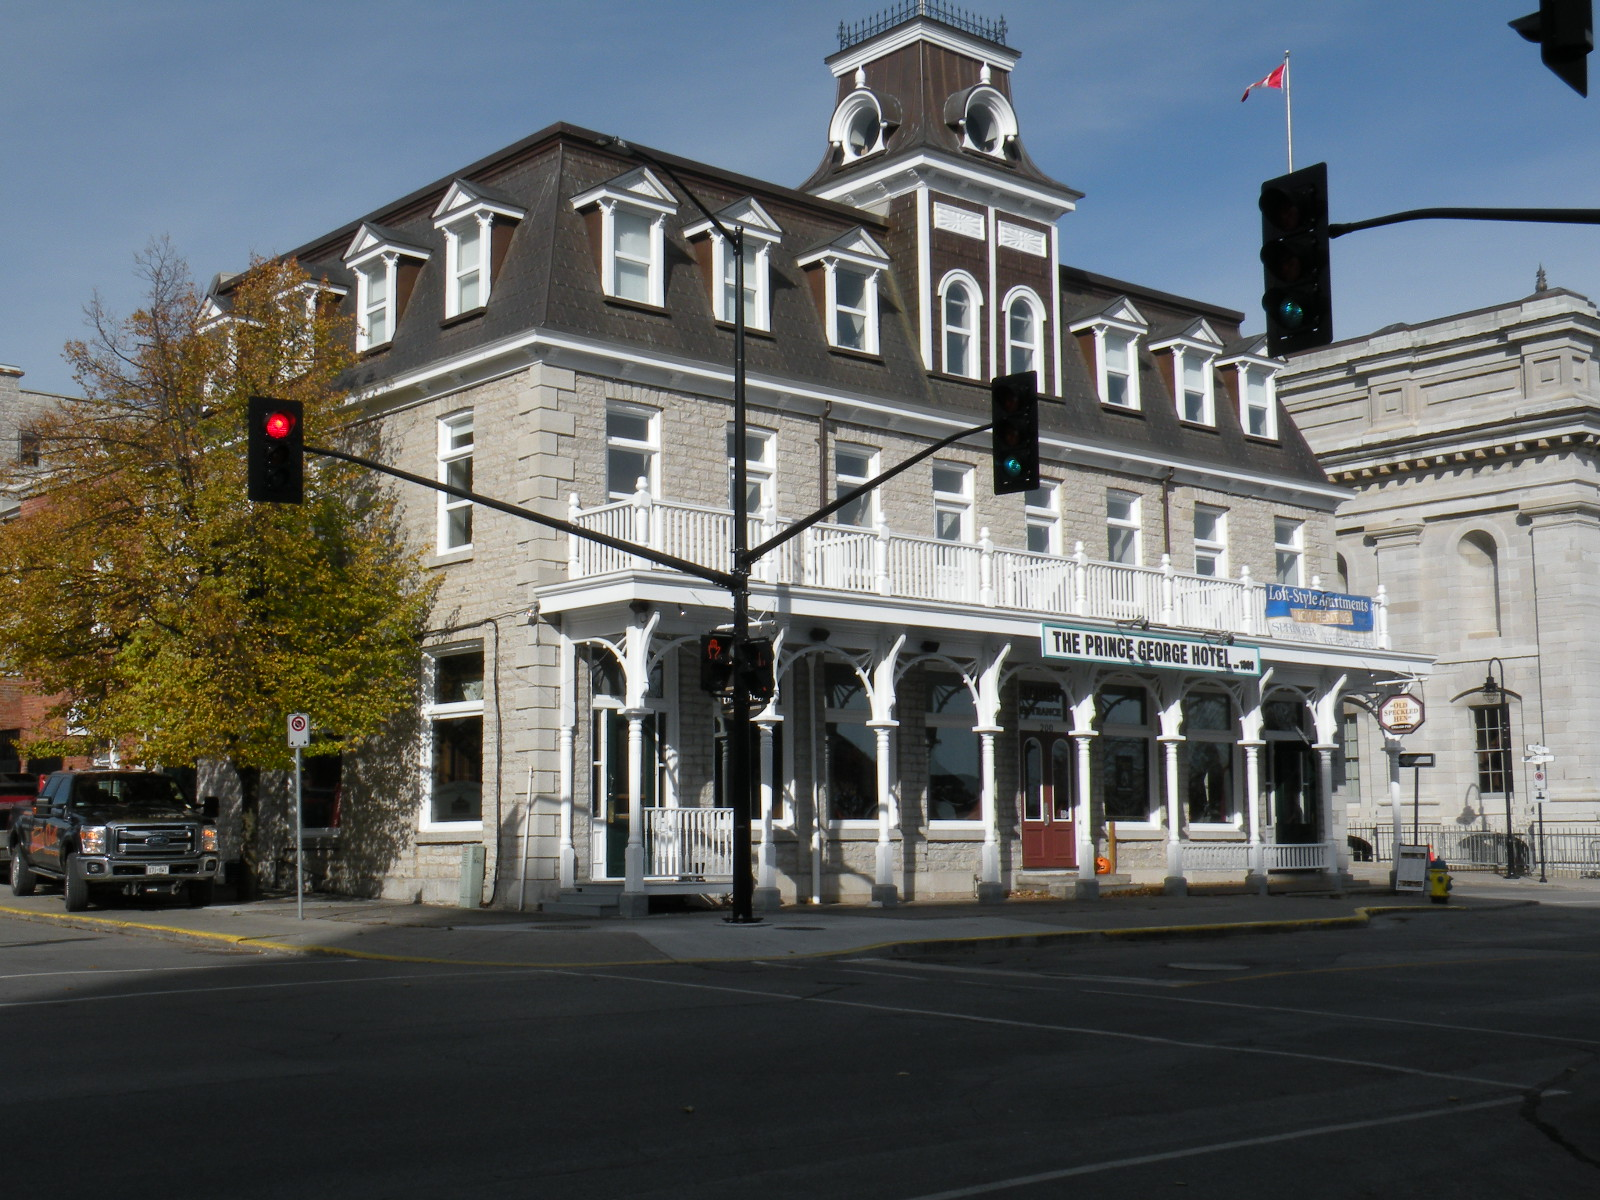 Kingston's Prince George Hotel